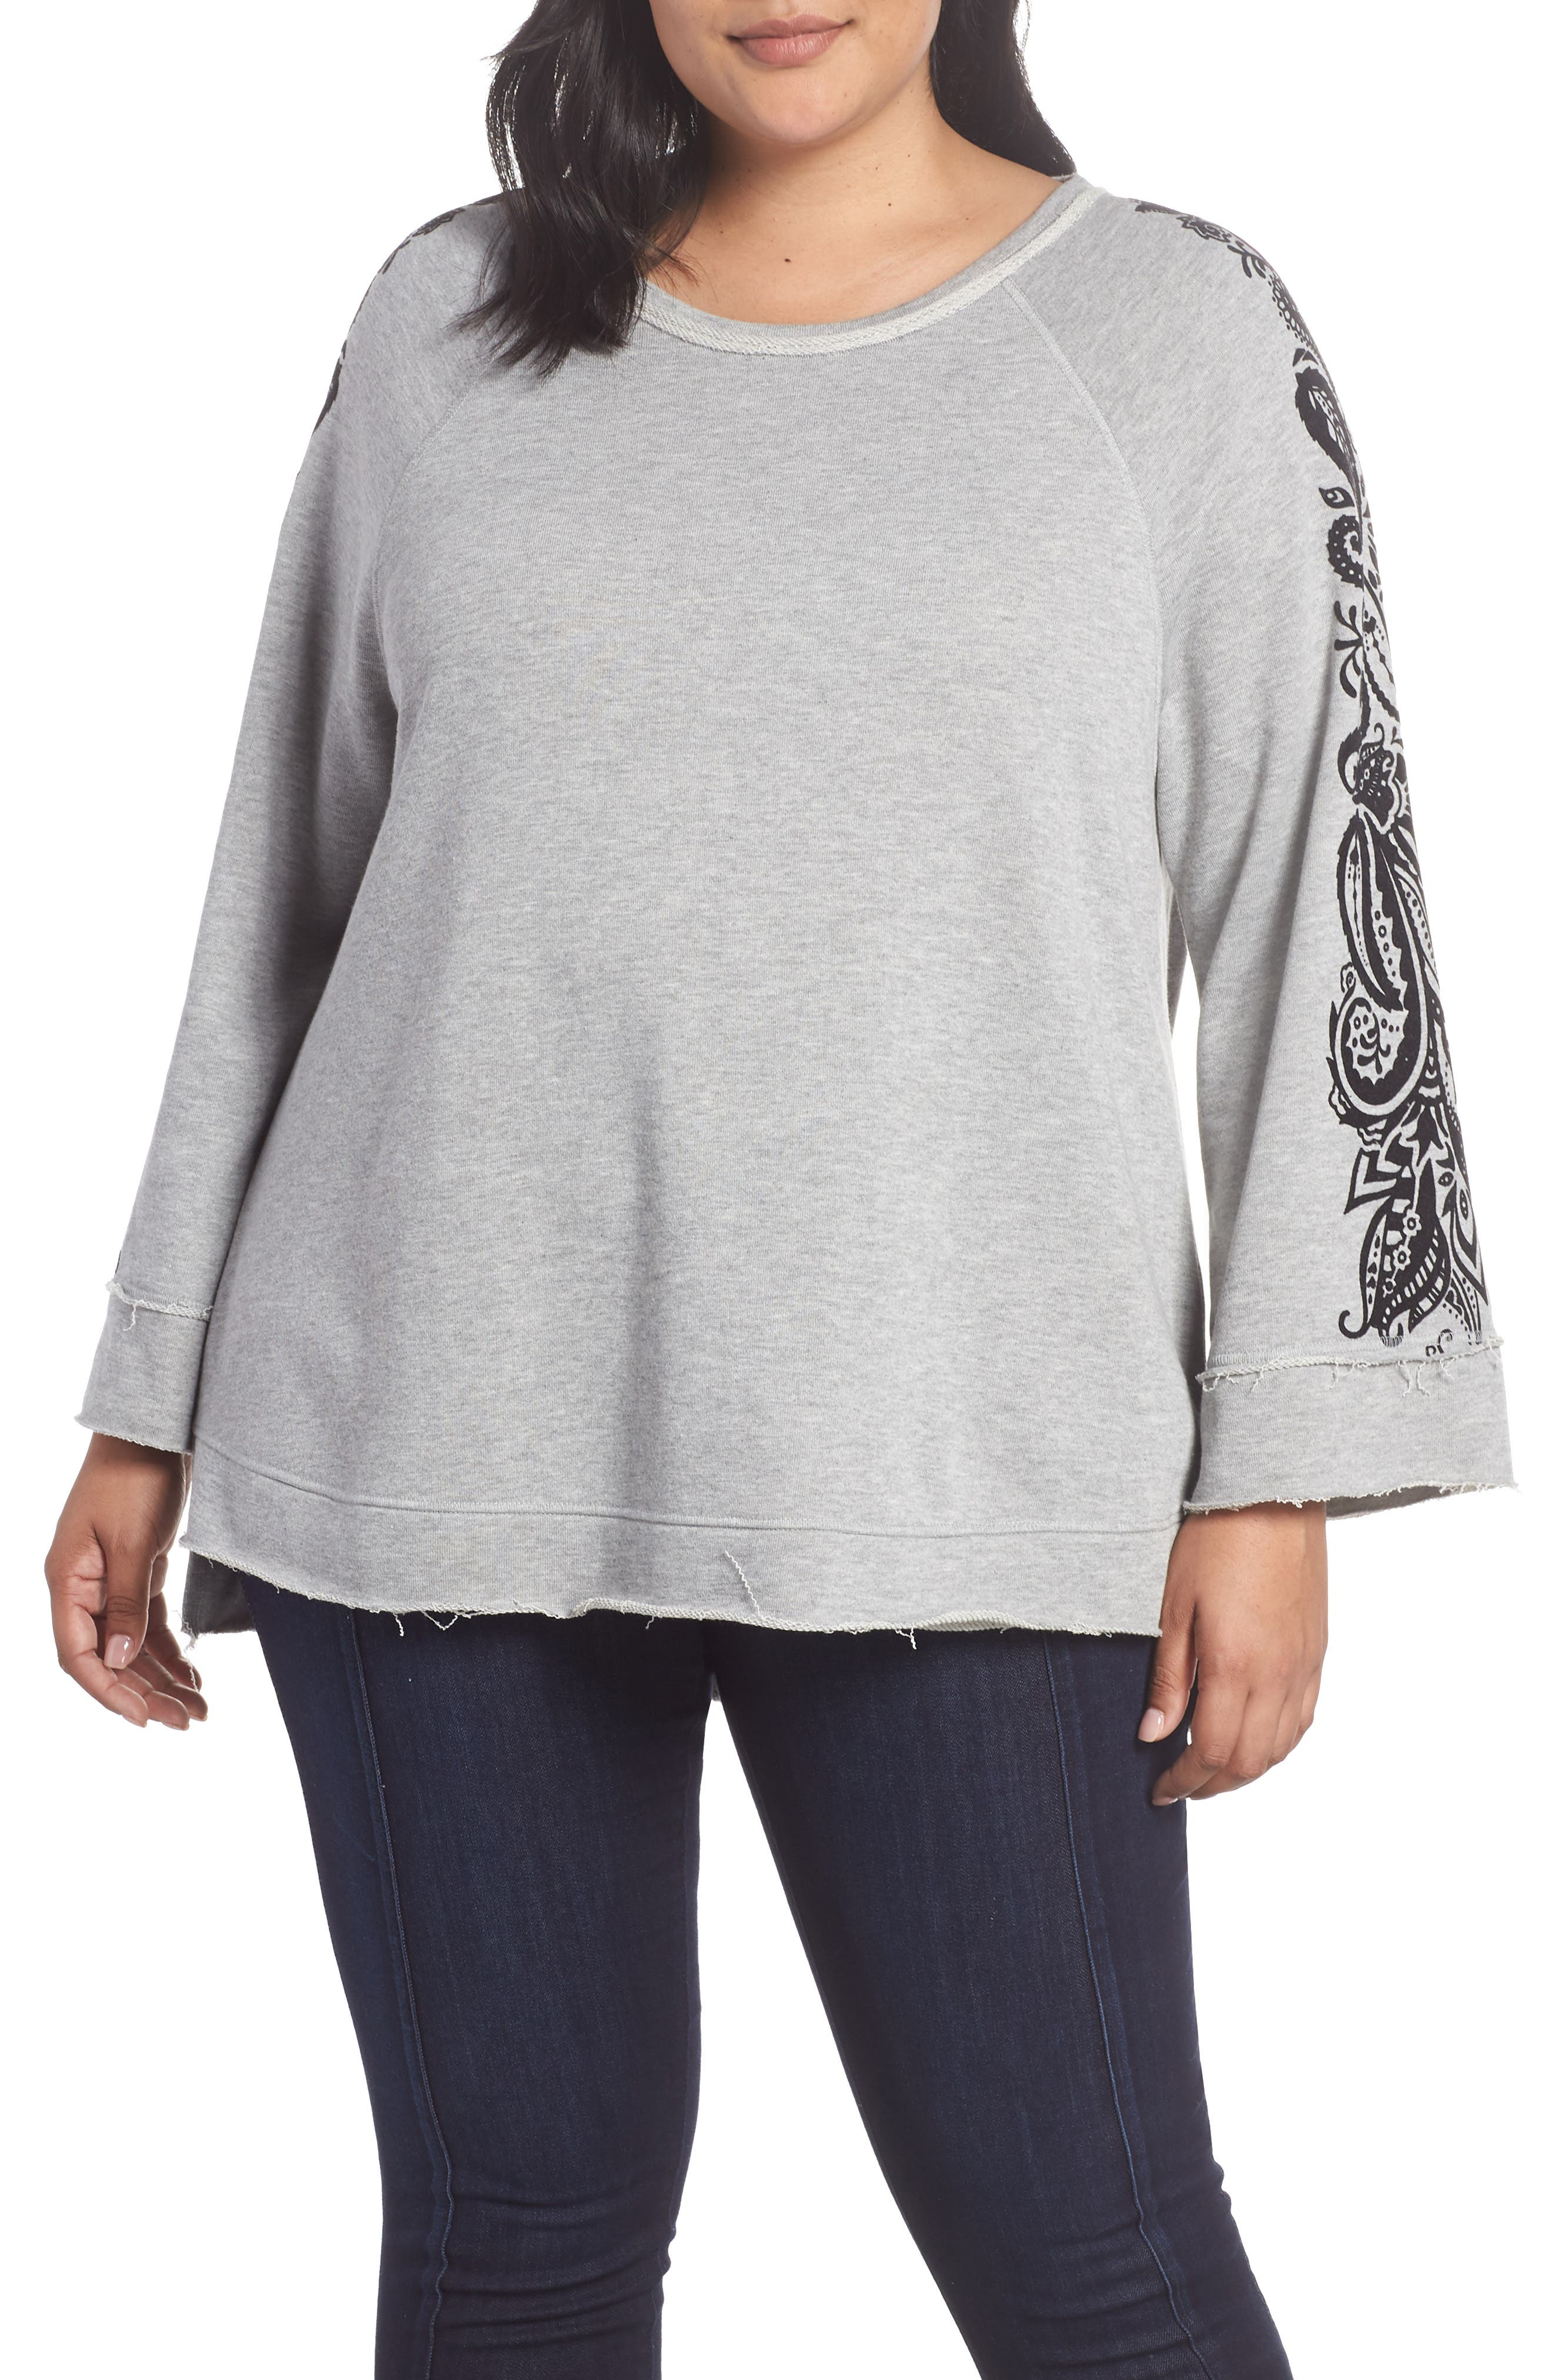 Plus Size Seven7 French Terry Bell Sleeve Sweatshirt, Grey